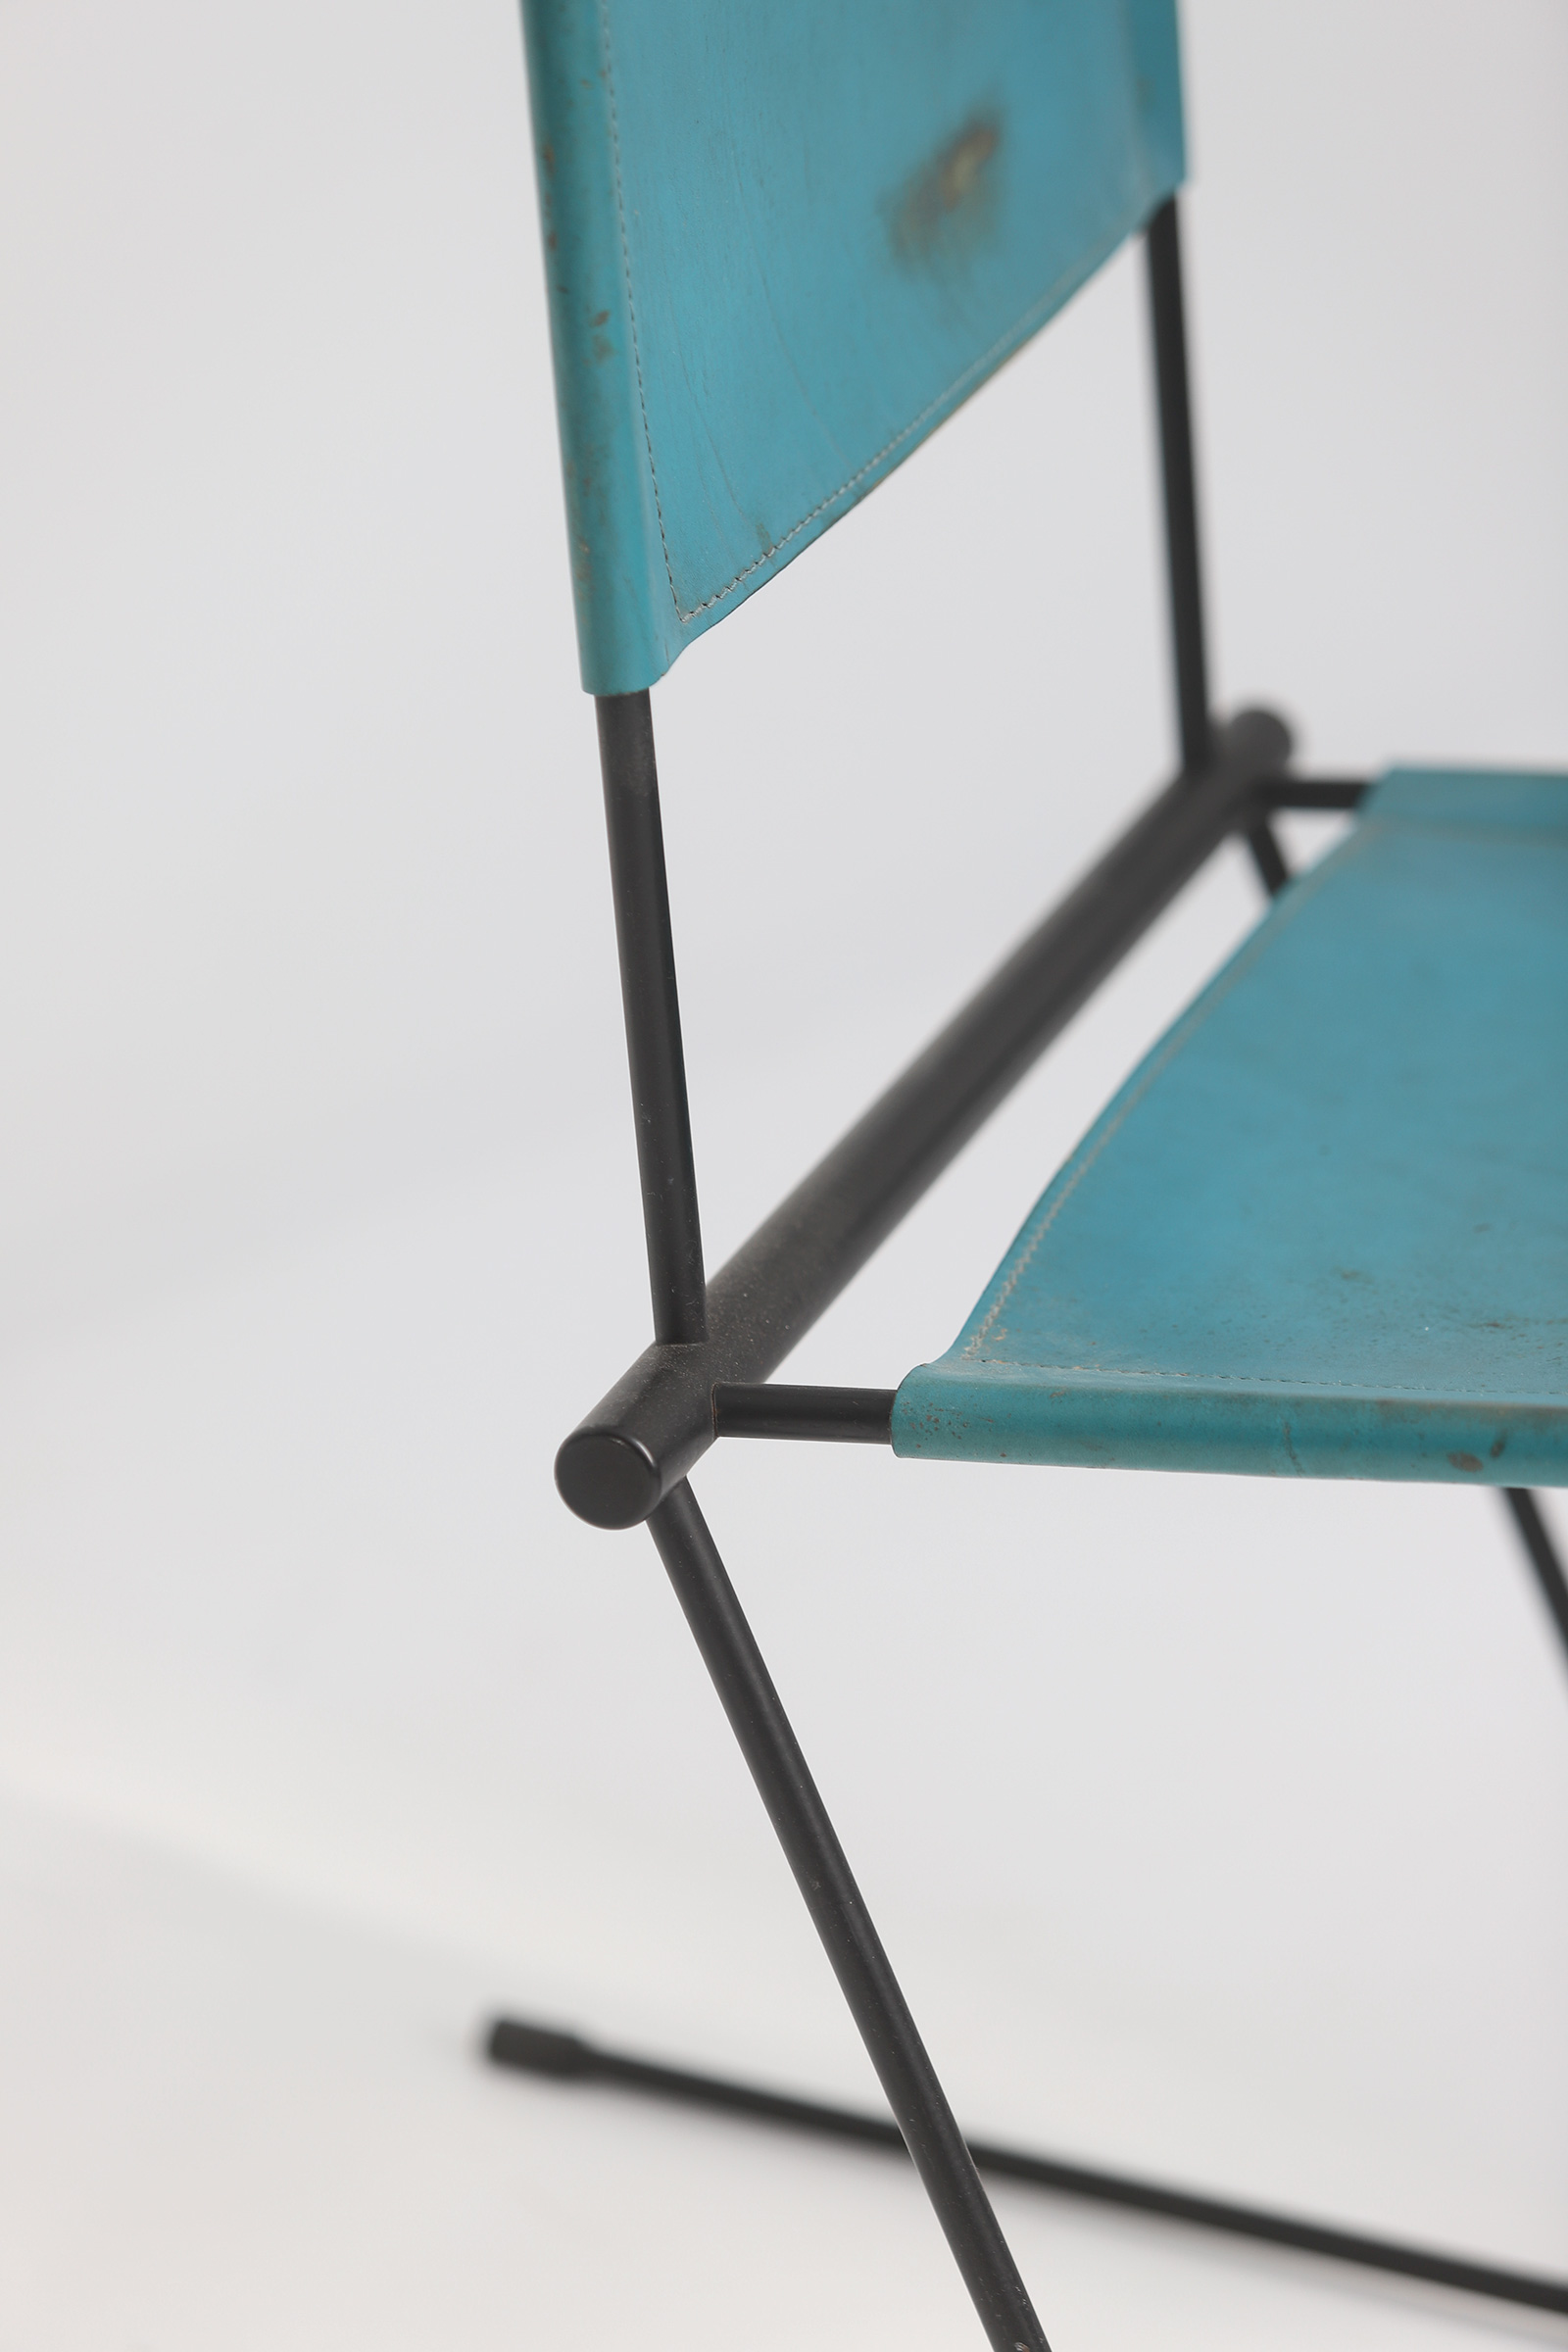 Ballerina Chairs By Herbert Ohl For Matteo Grassiimage 6